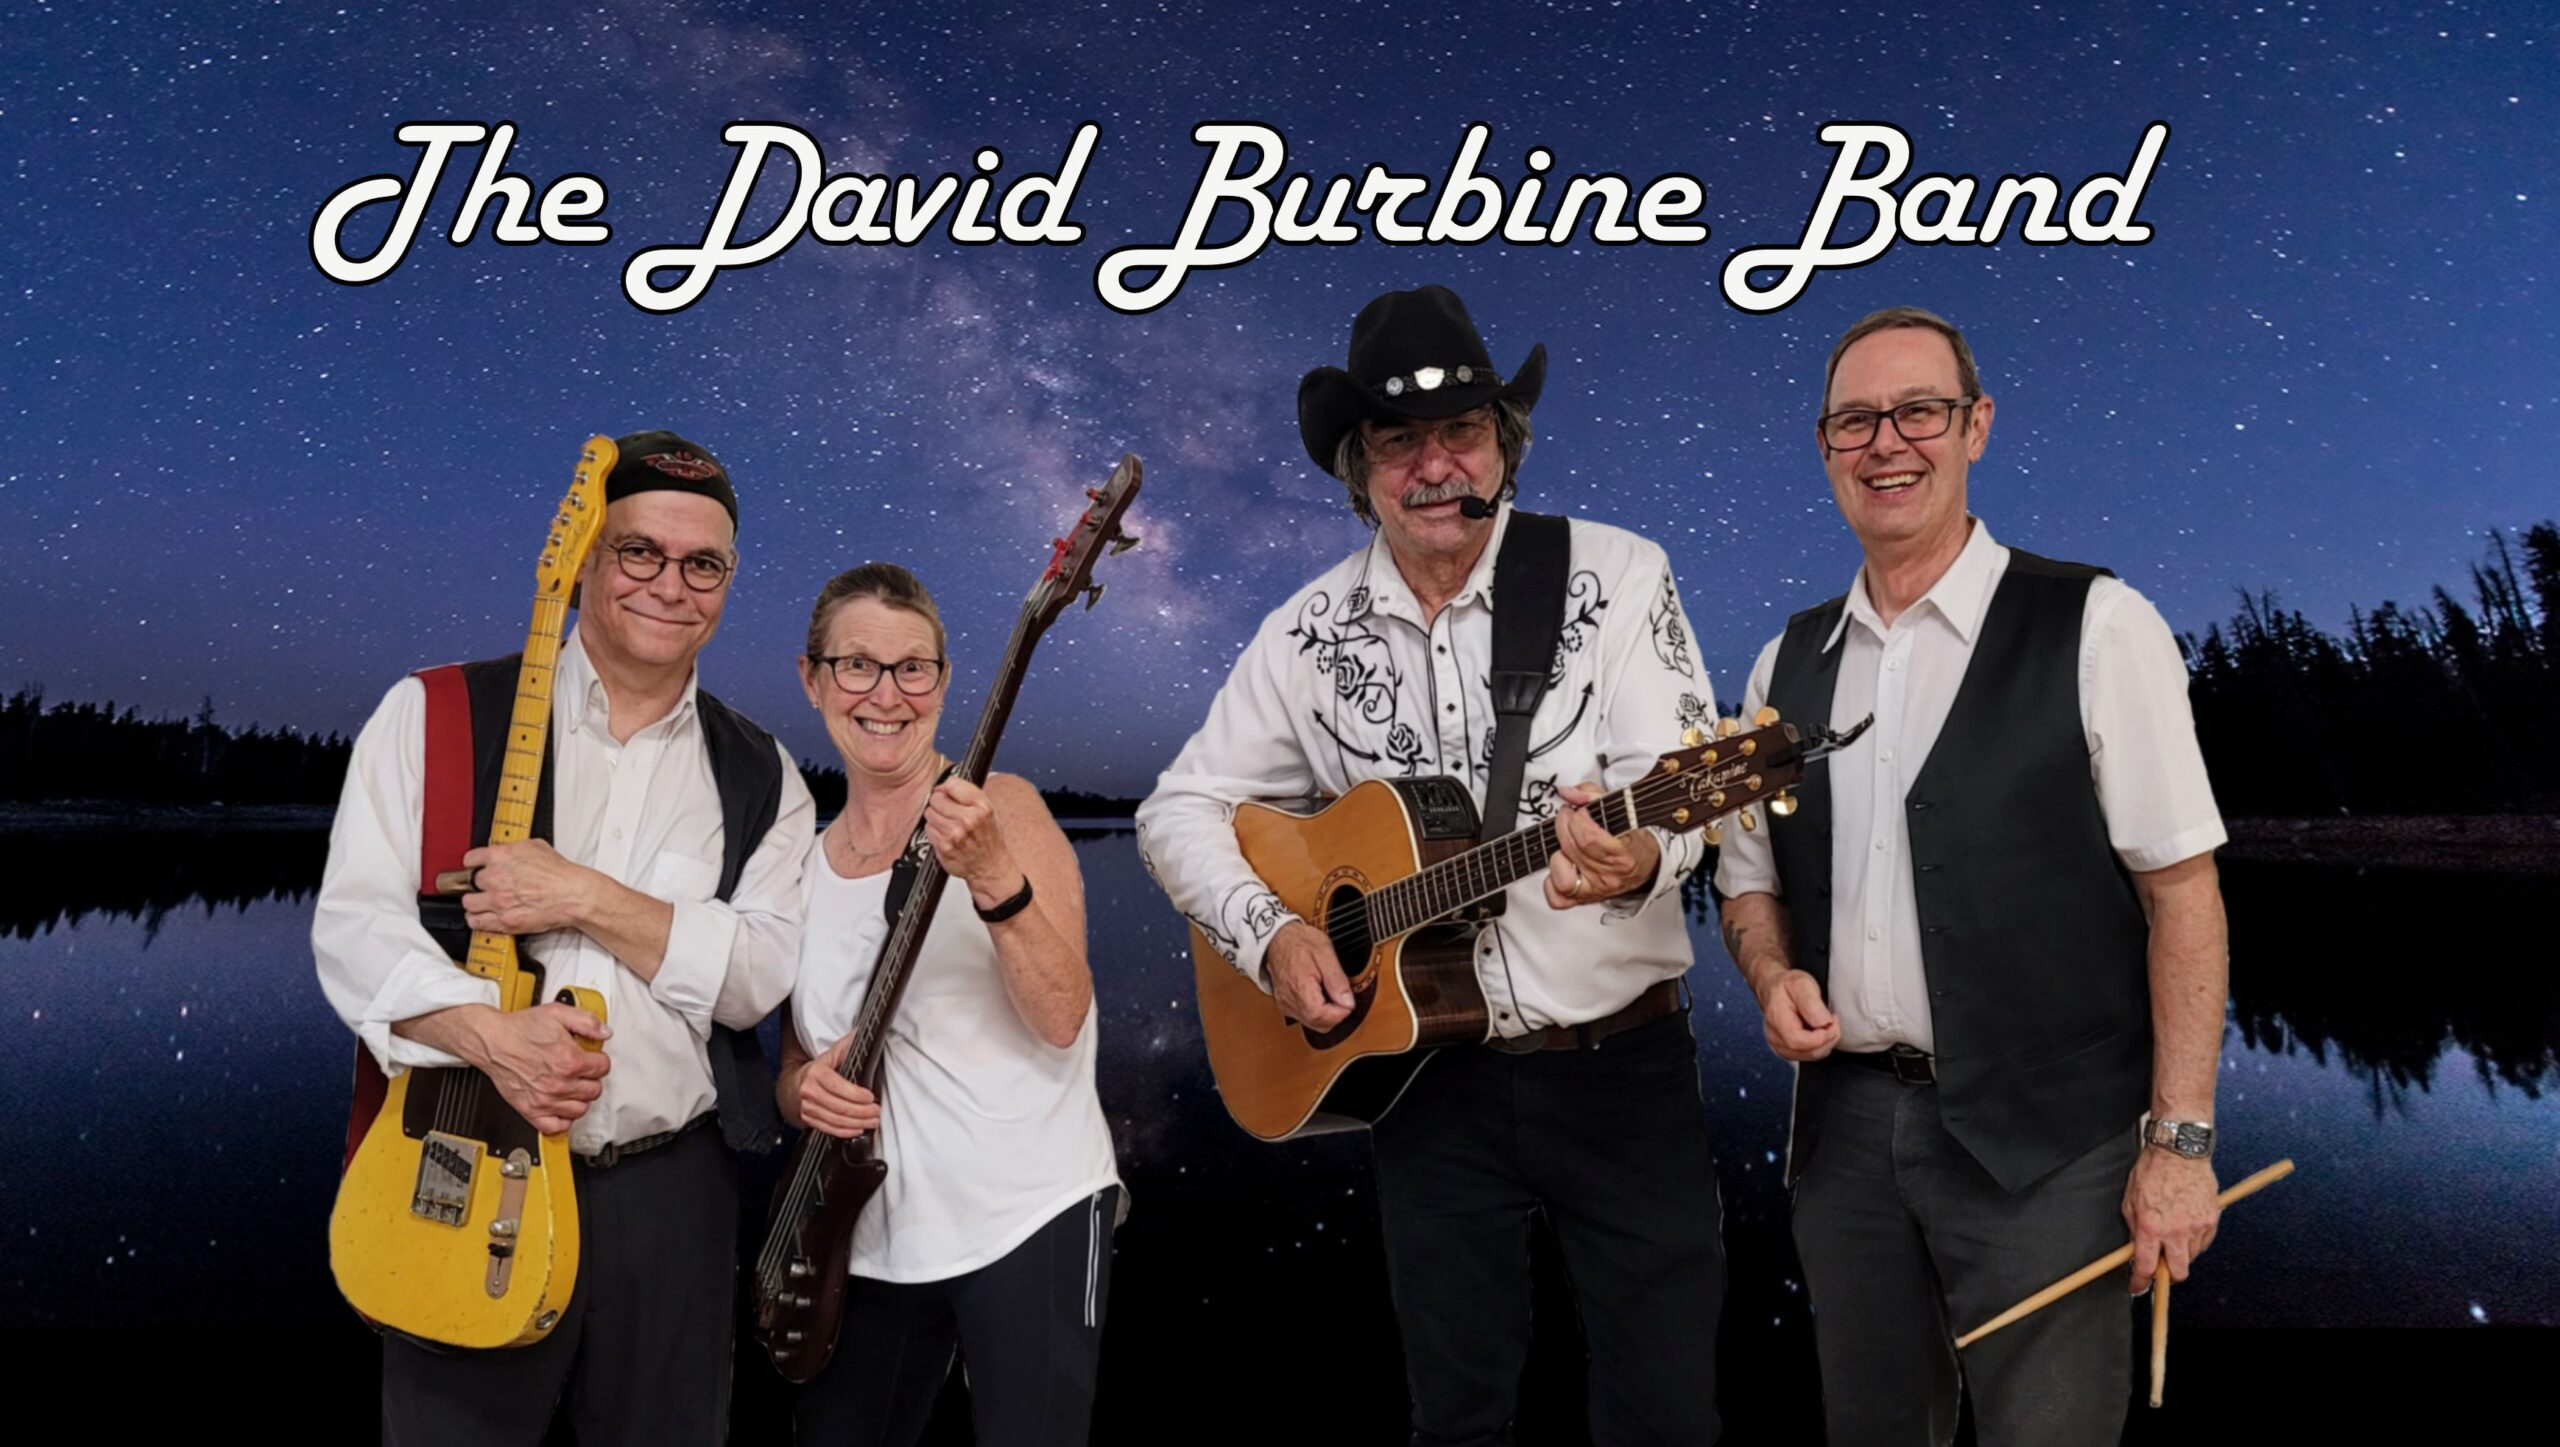 DAVE BURBINE BAND TO APPEAR JULY 7 AT THE BBQ & SHOW AT HANK SNOW GAZEBO AREA